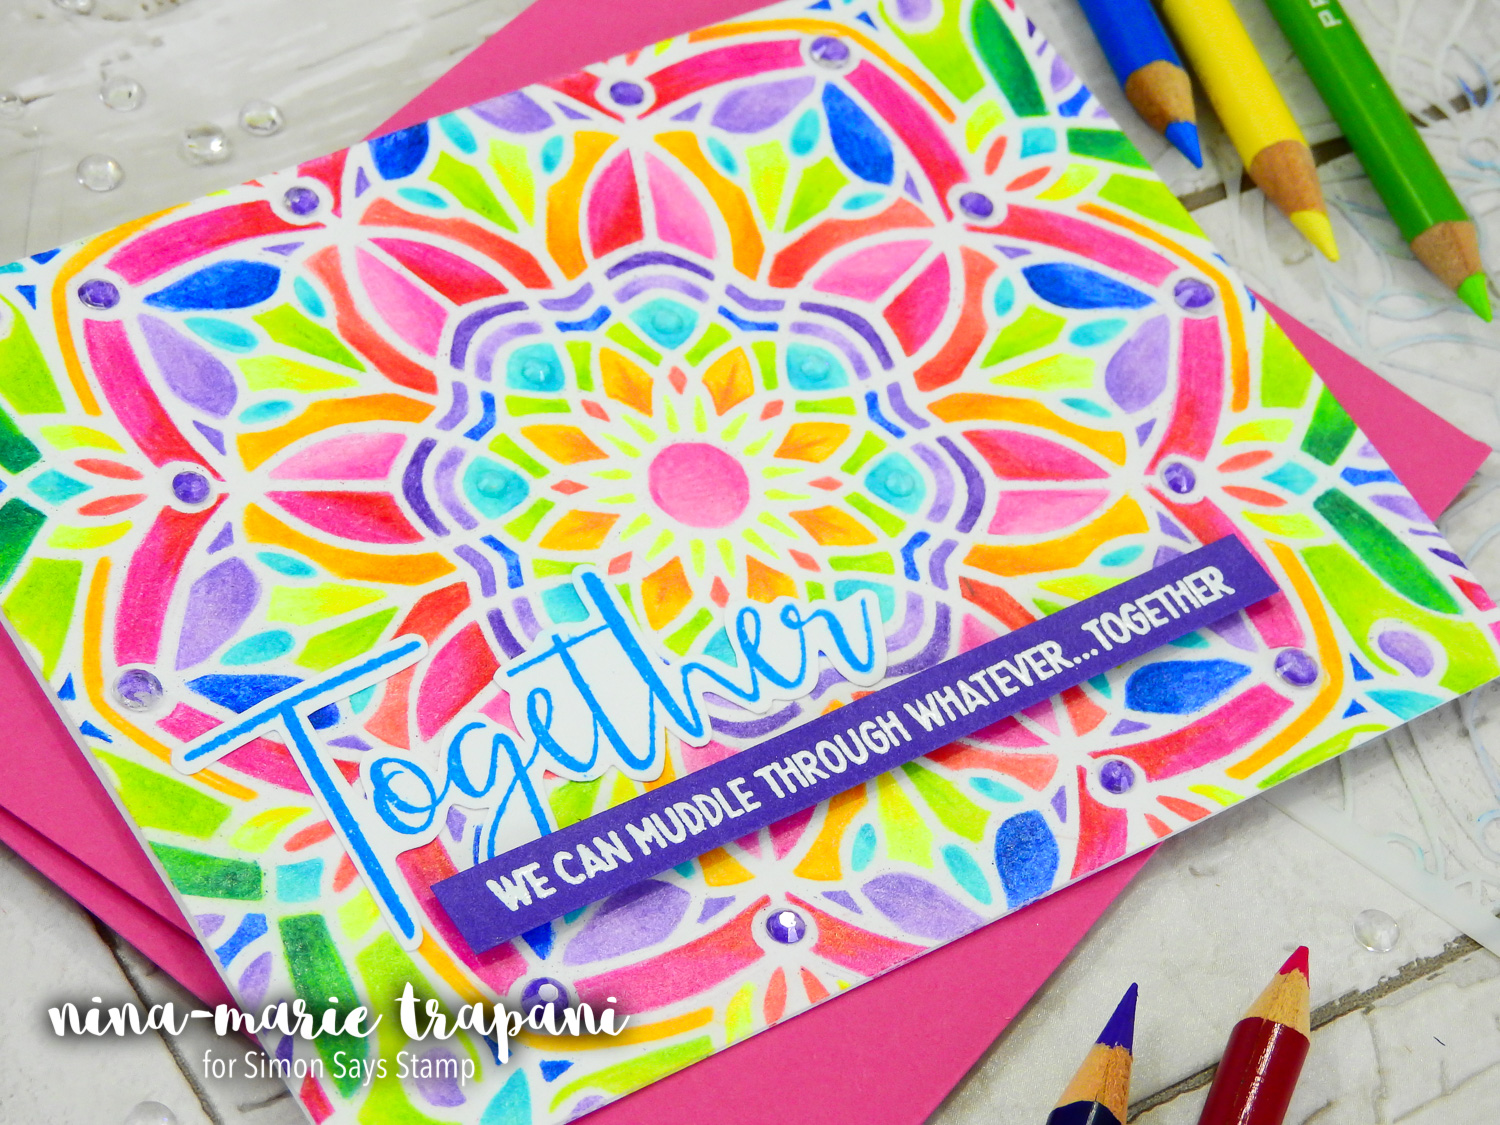 Colored Pencils + Stencils + Simon's STAMPtember Release Blog Hop | Nina-Marie Design